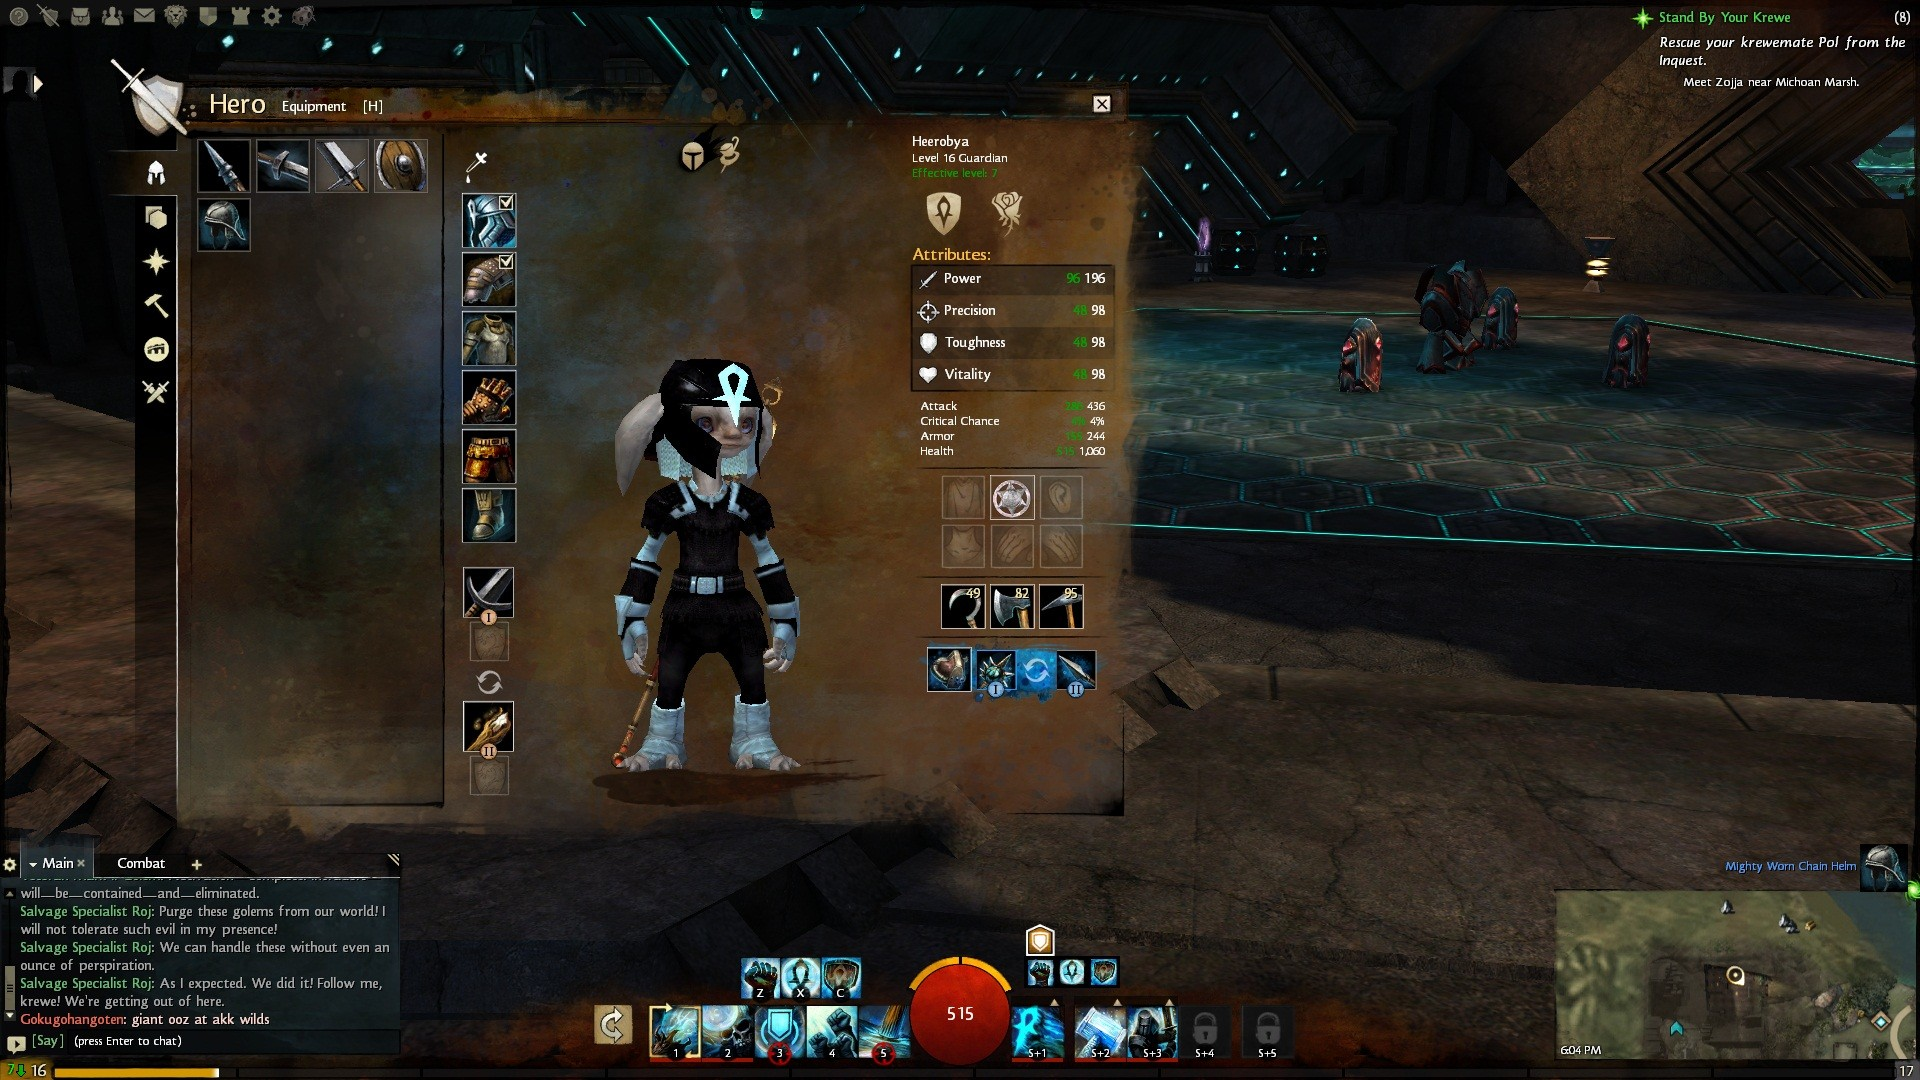 Guild Wars 2 - Found a rare black dye! Too bad it's beta :(